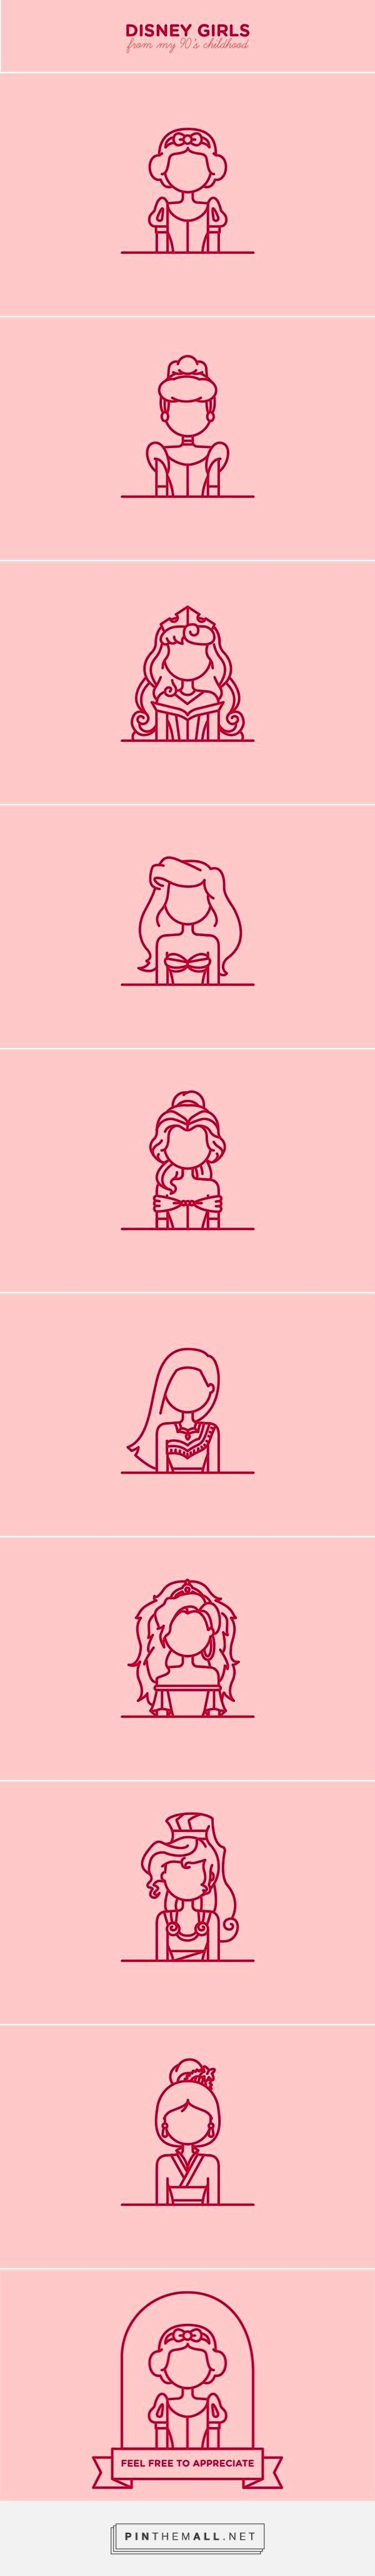 Princesses Disney minimaliste